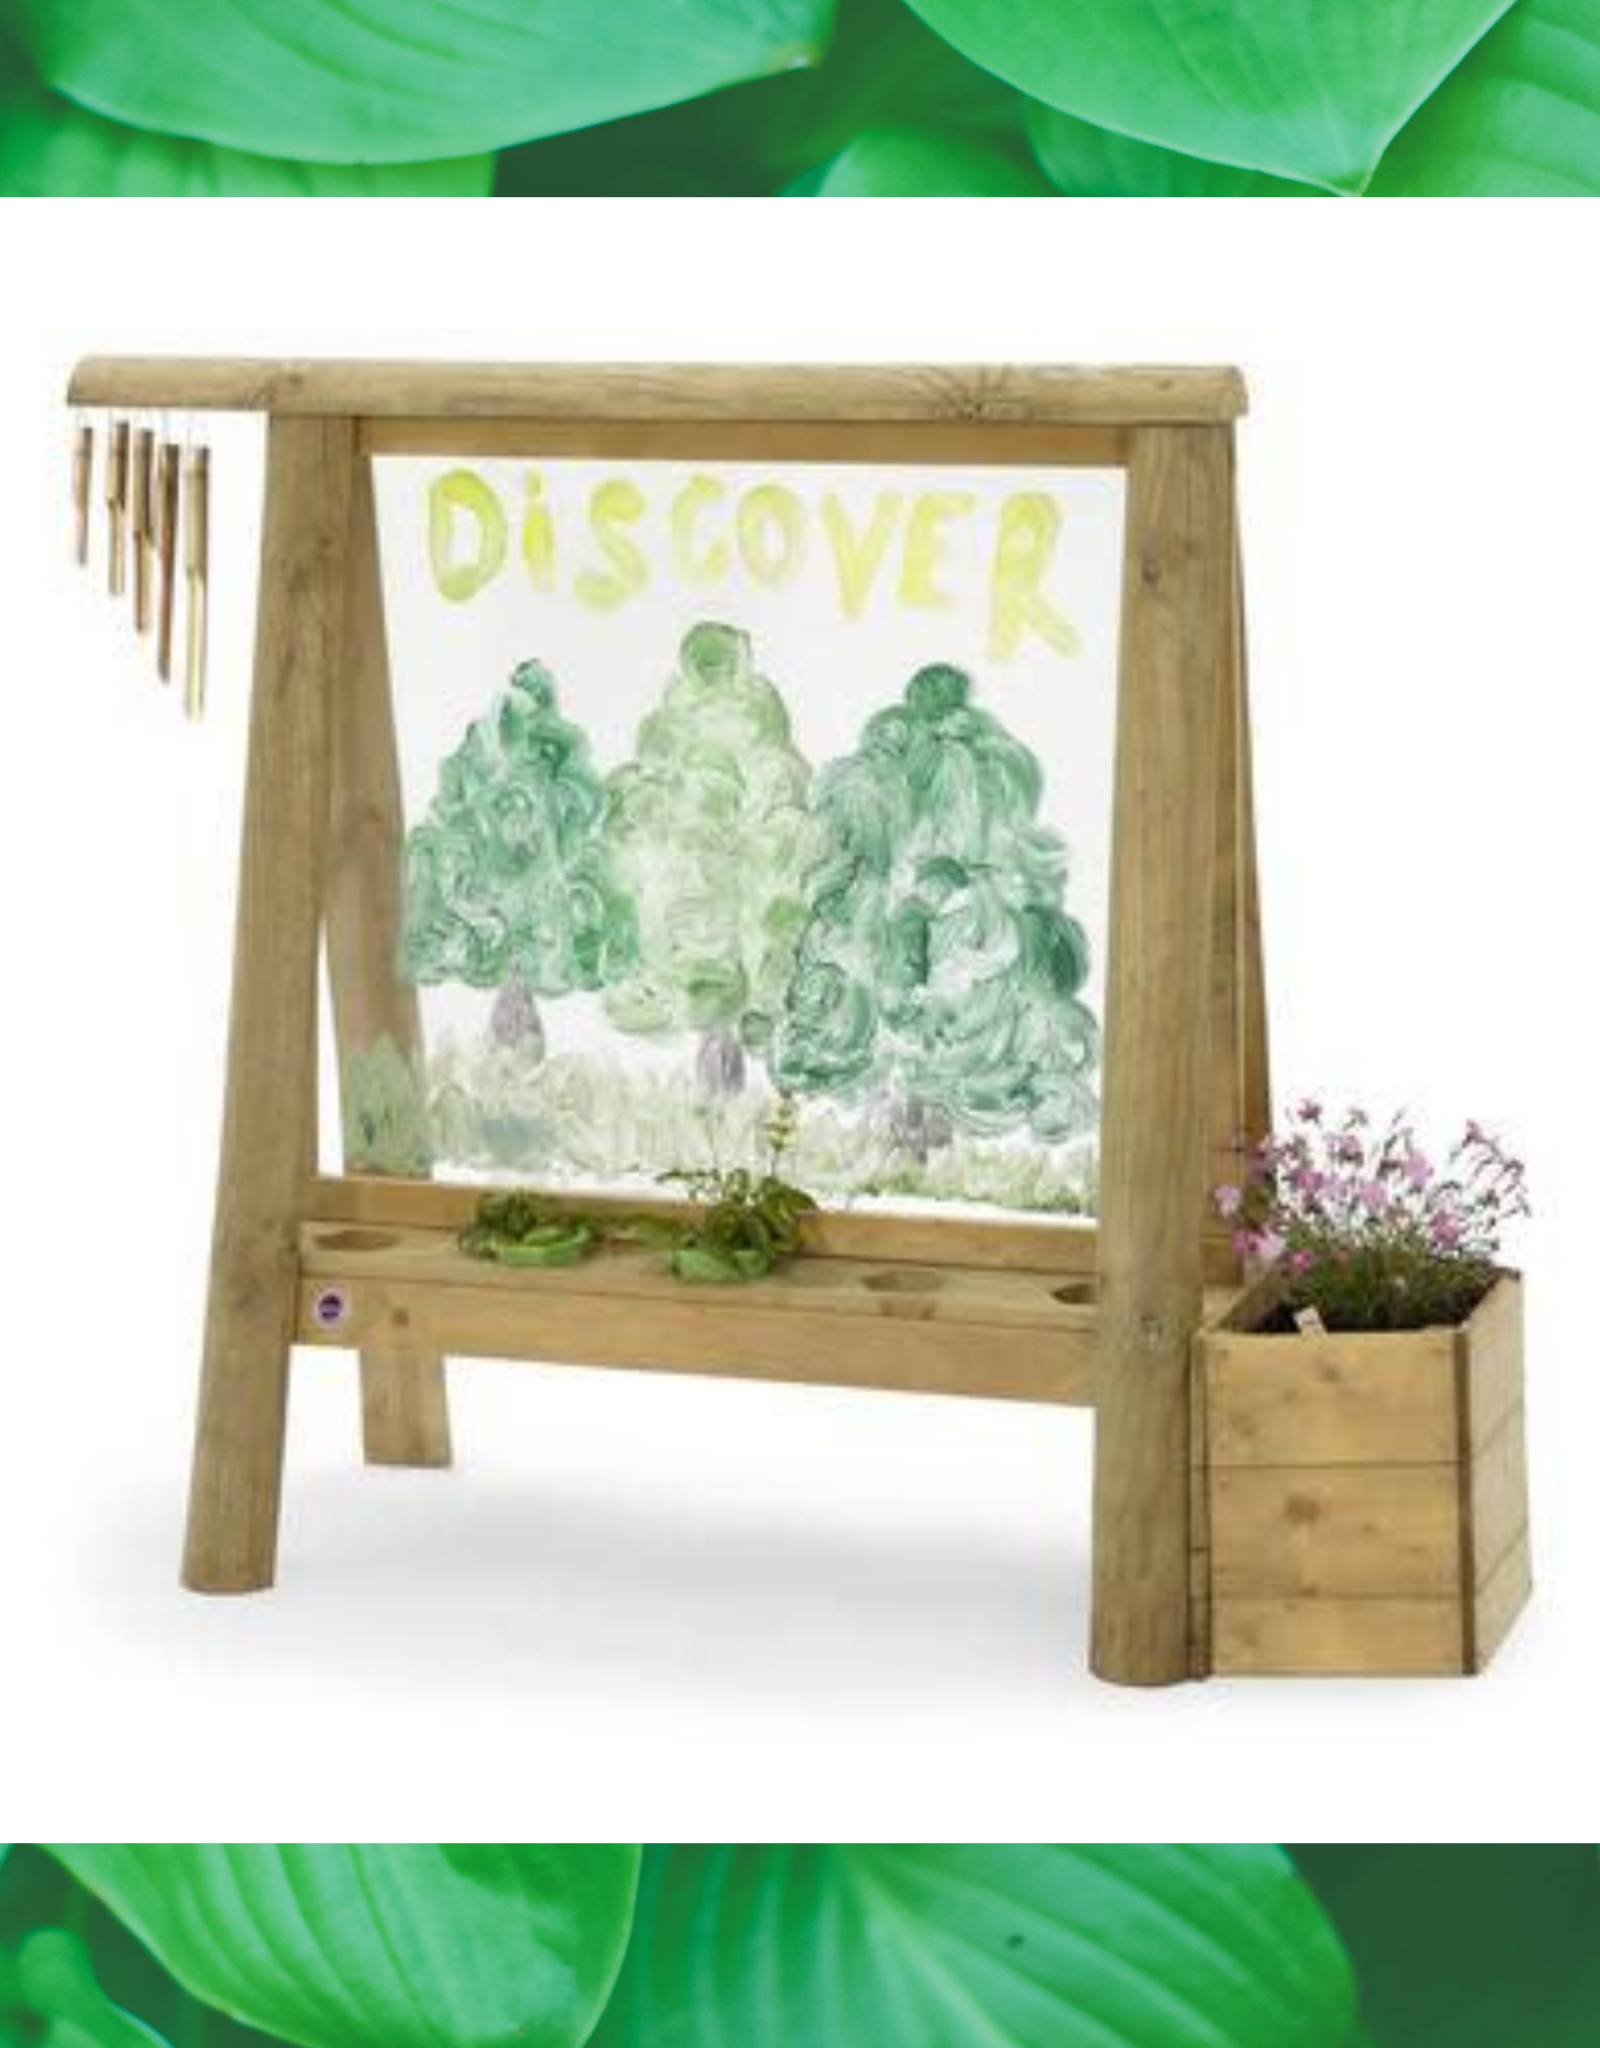 ART EASEL PLUS DISCOVERY CREATE & PLAY EASEL